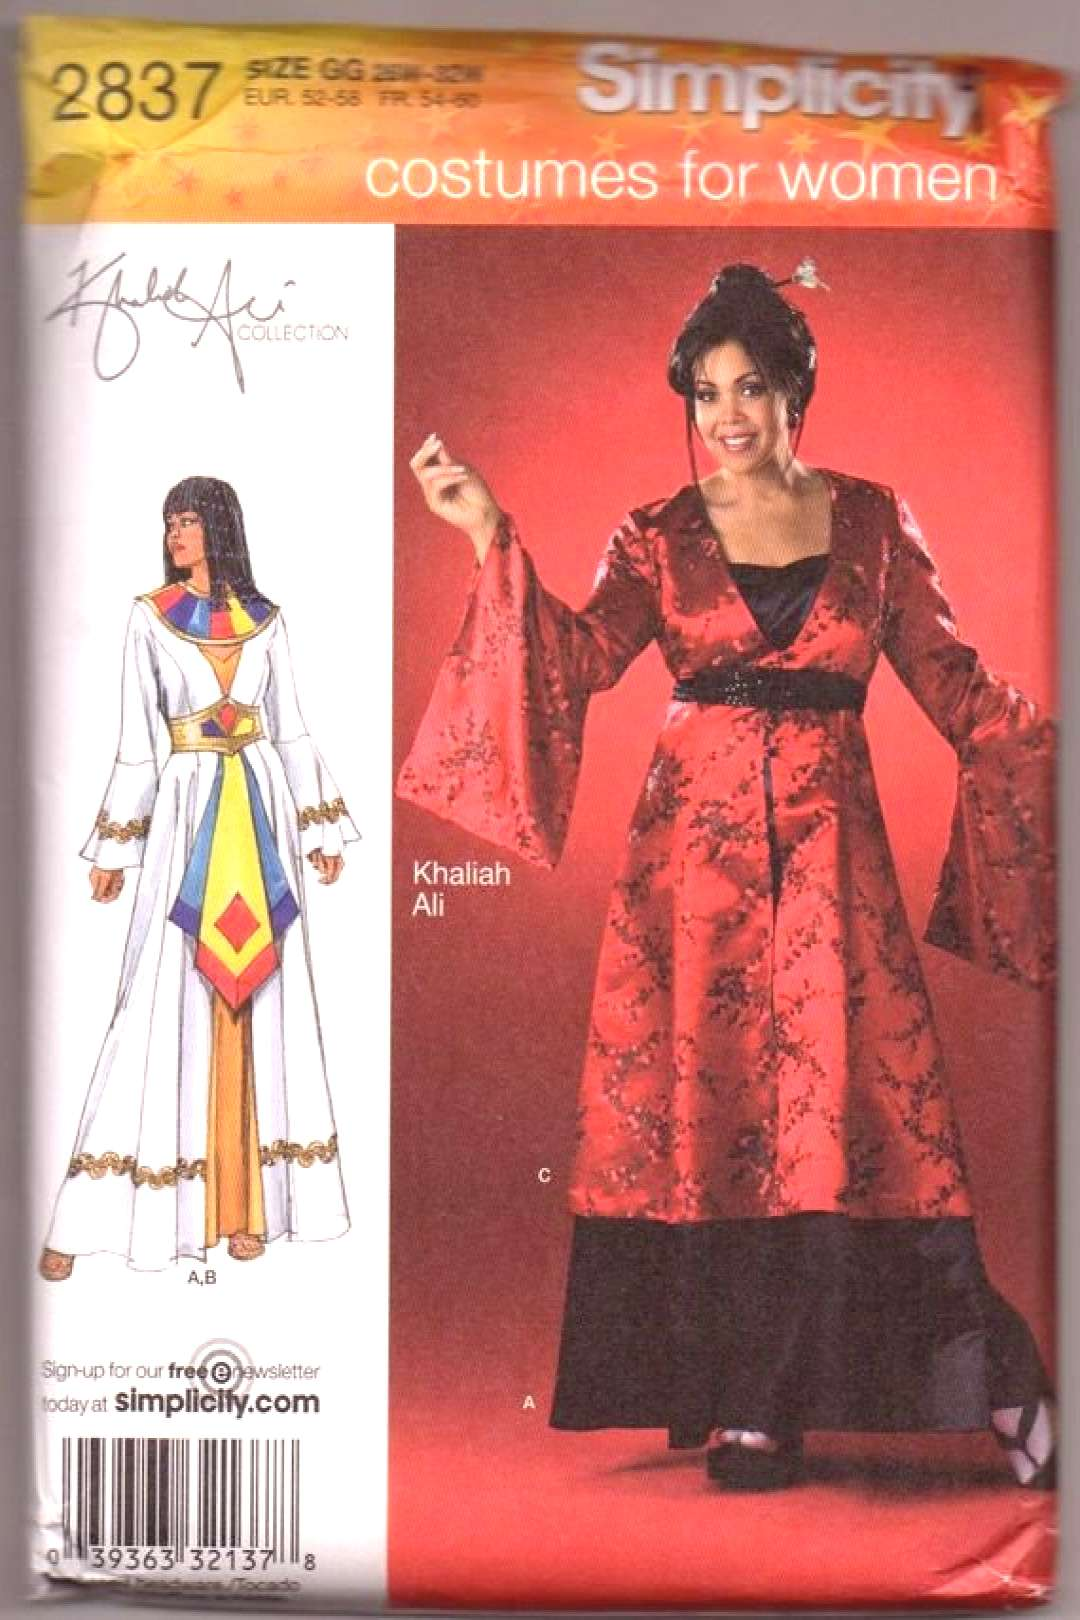 Simplicity 2837 Cleopatra Egyptian Costume Sewing Pattern UNCUT Plus Size 18W - 24W or 26W - 32W Kh